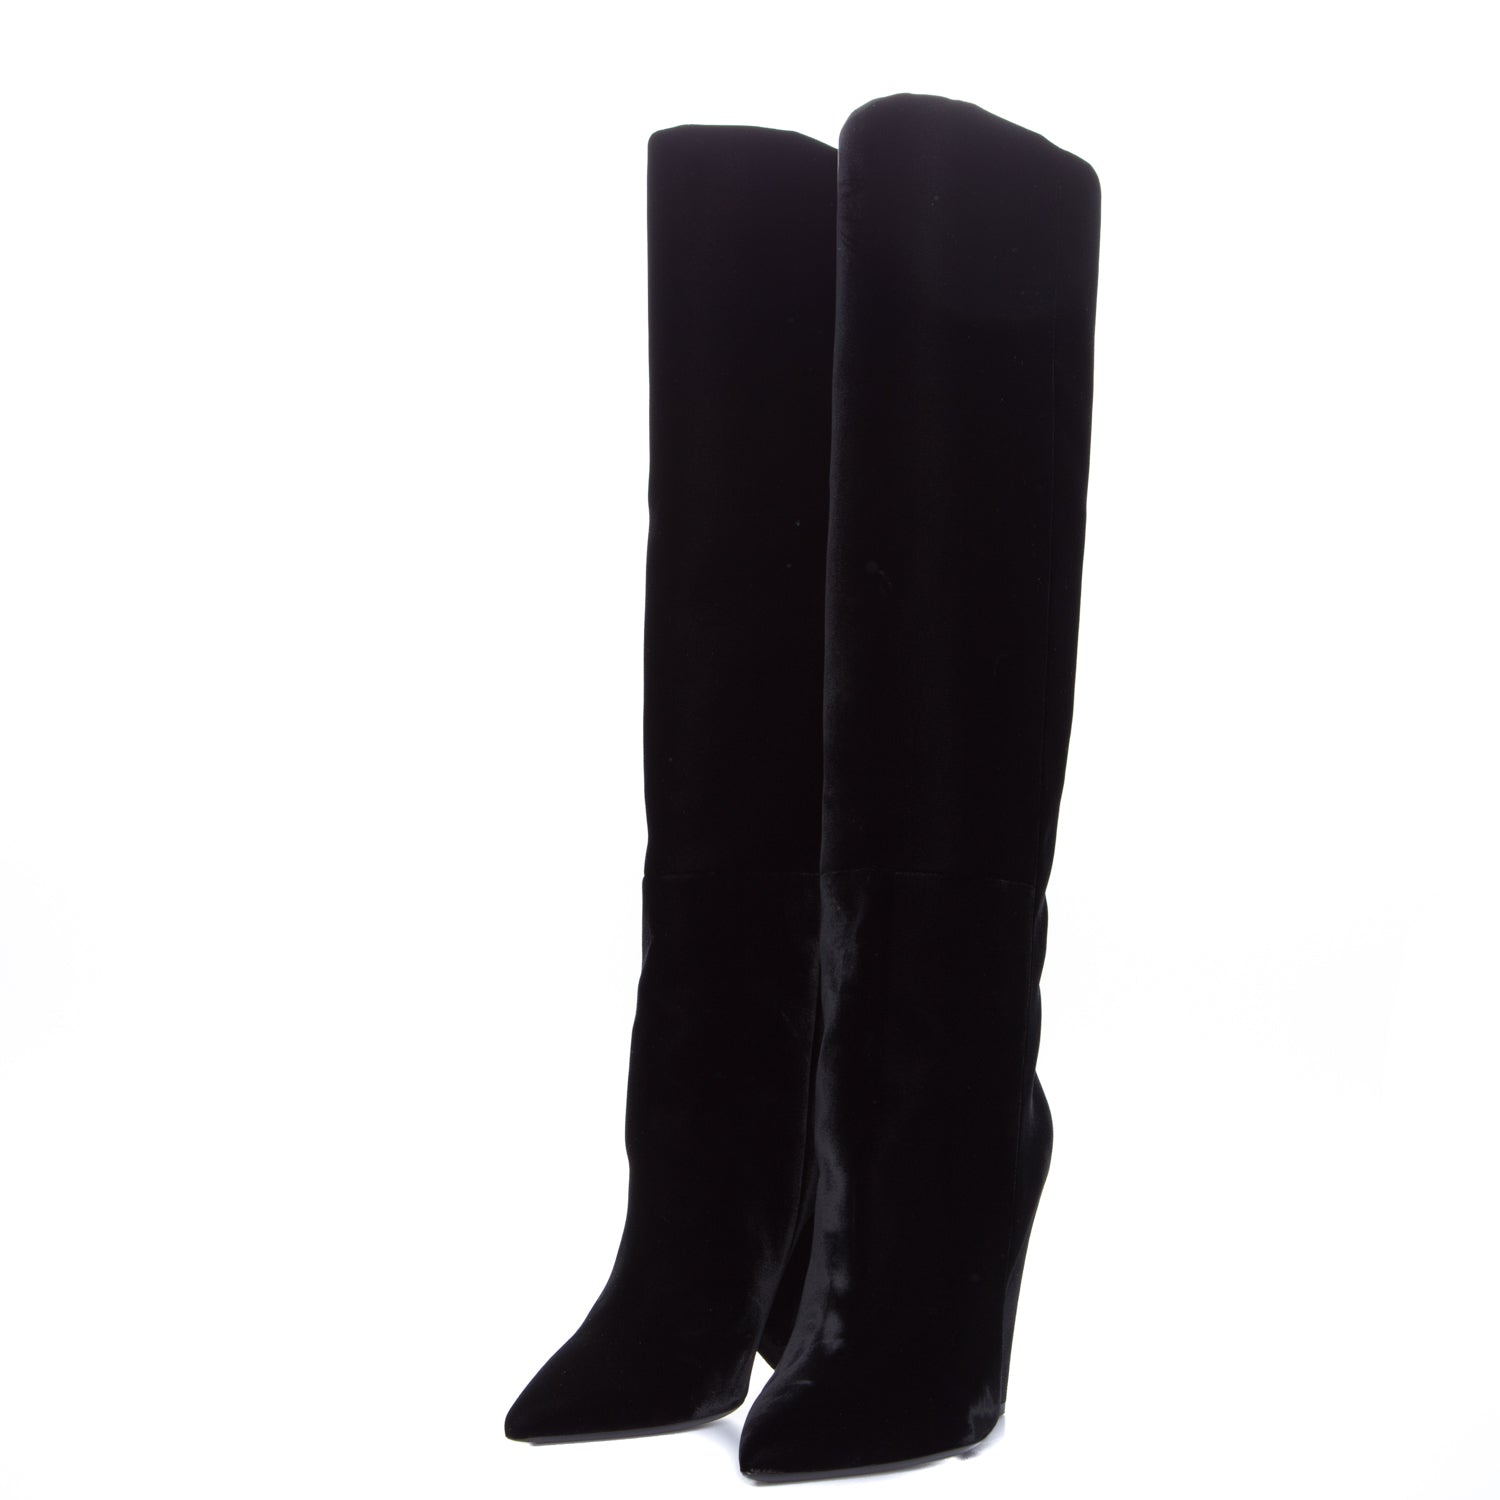 2b928f2c012f COM Yves Saint Laurent Niki Wedge Boot In Velvet-YVES SAINT LAURENT -SHOPATVOI.COM